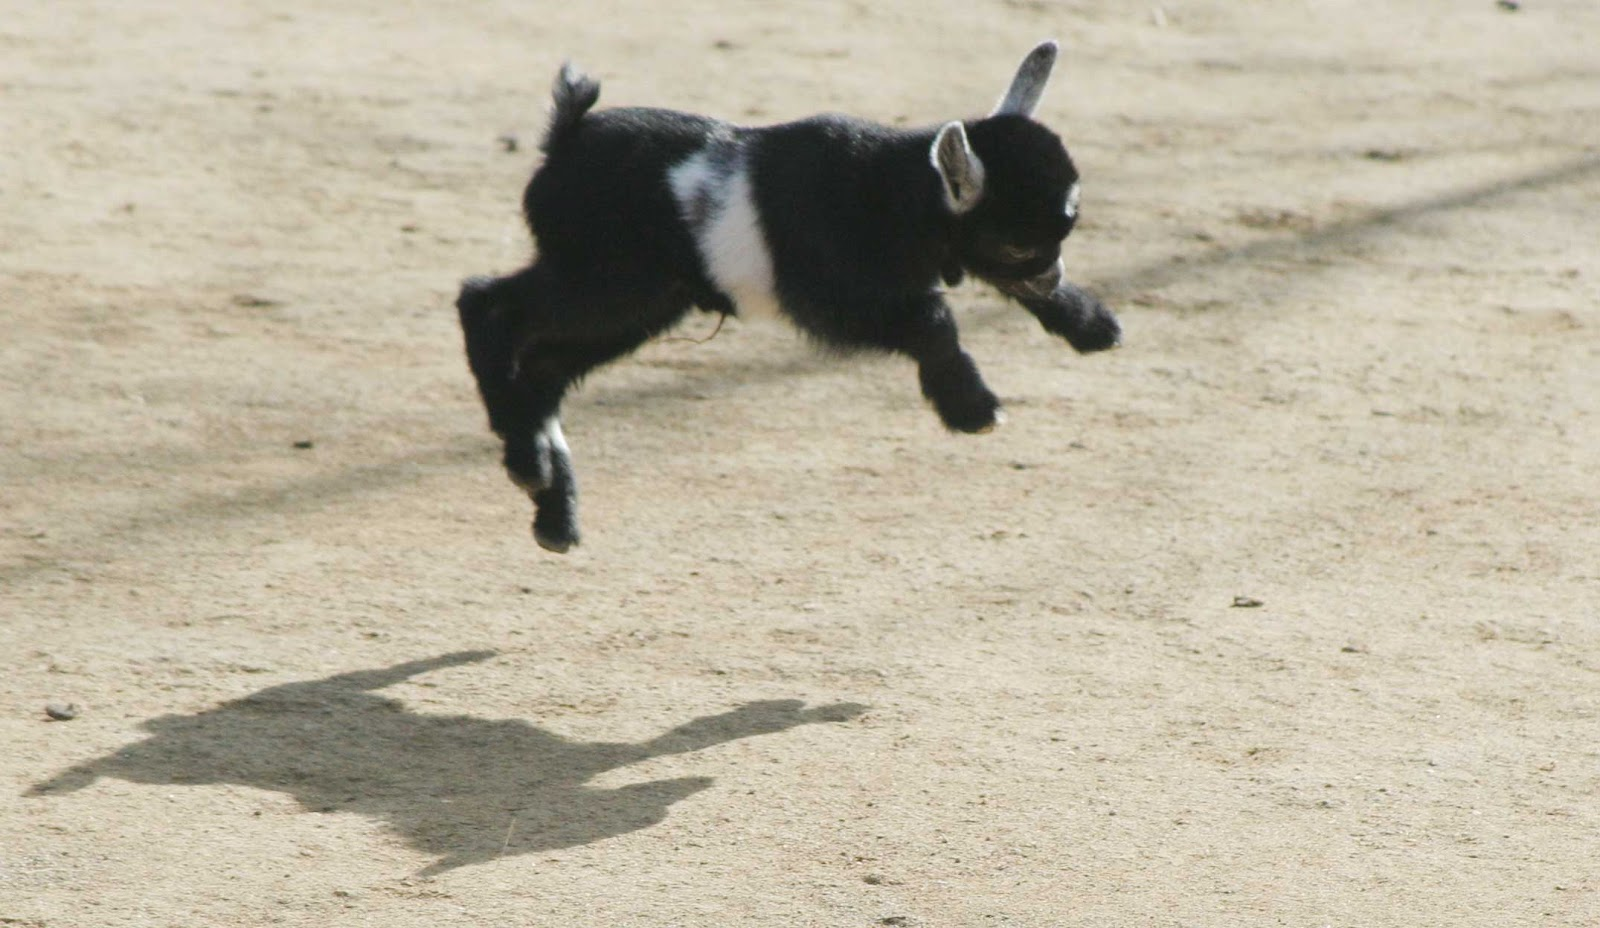 Baby pygmy goat jumping - photo#6